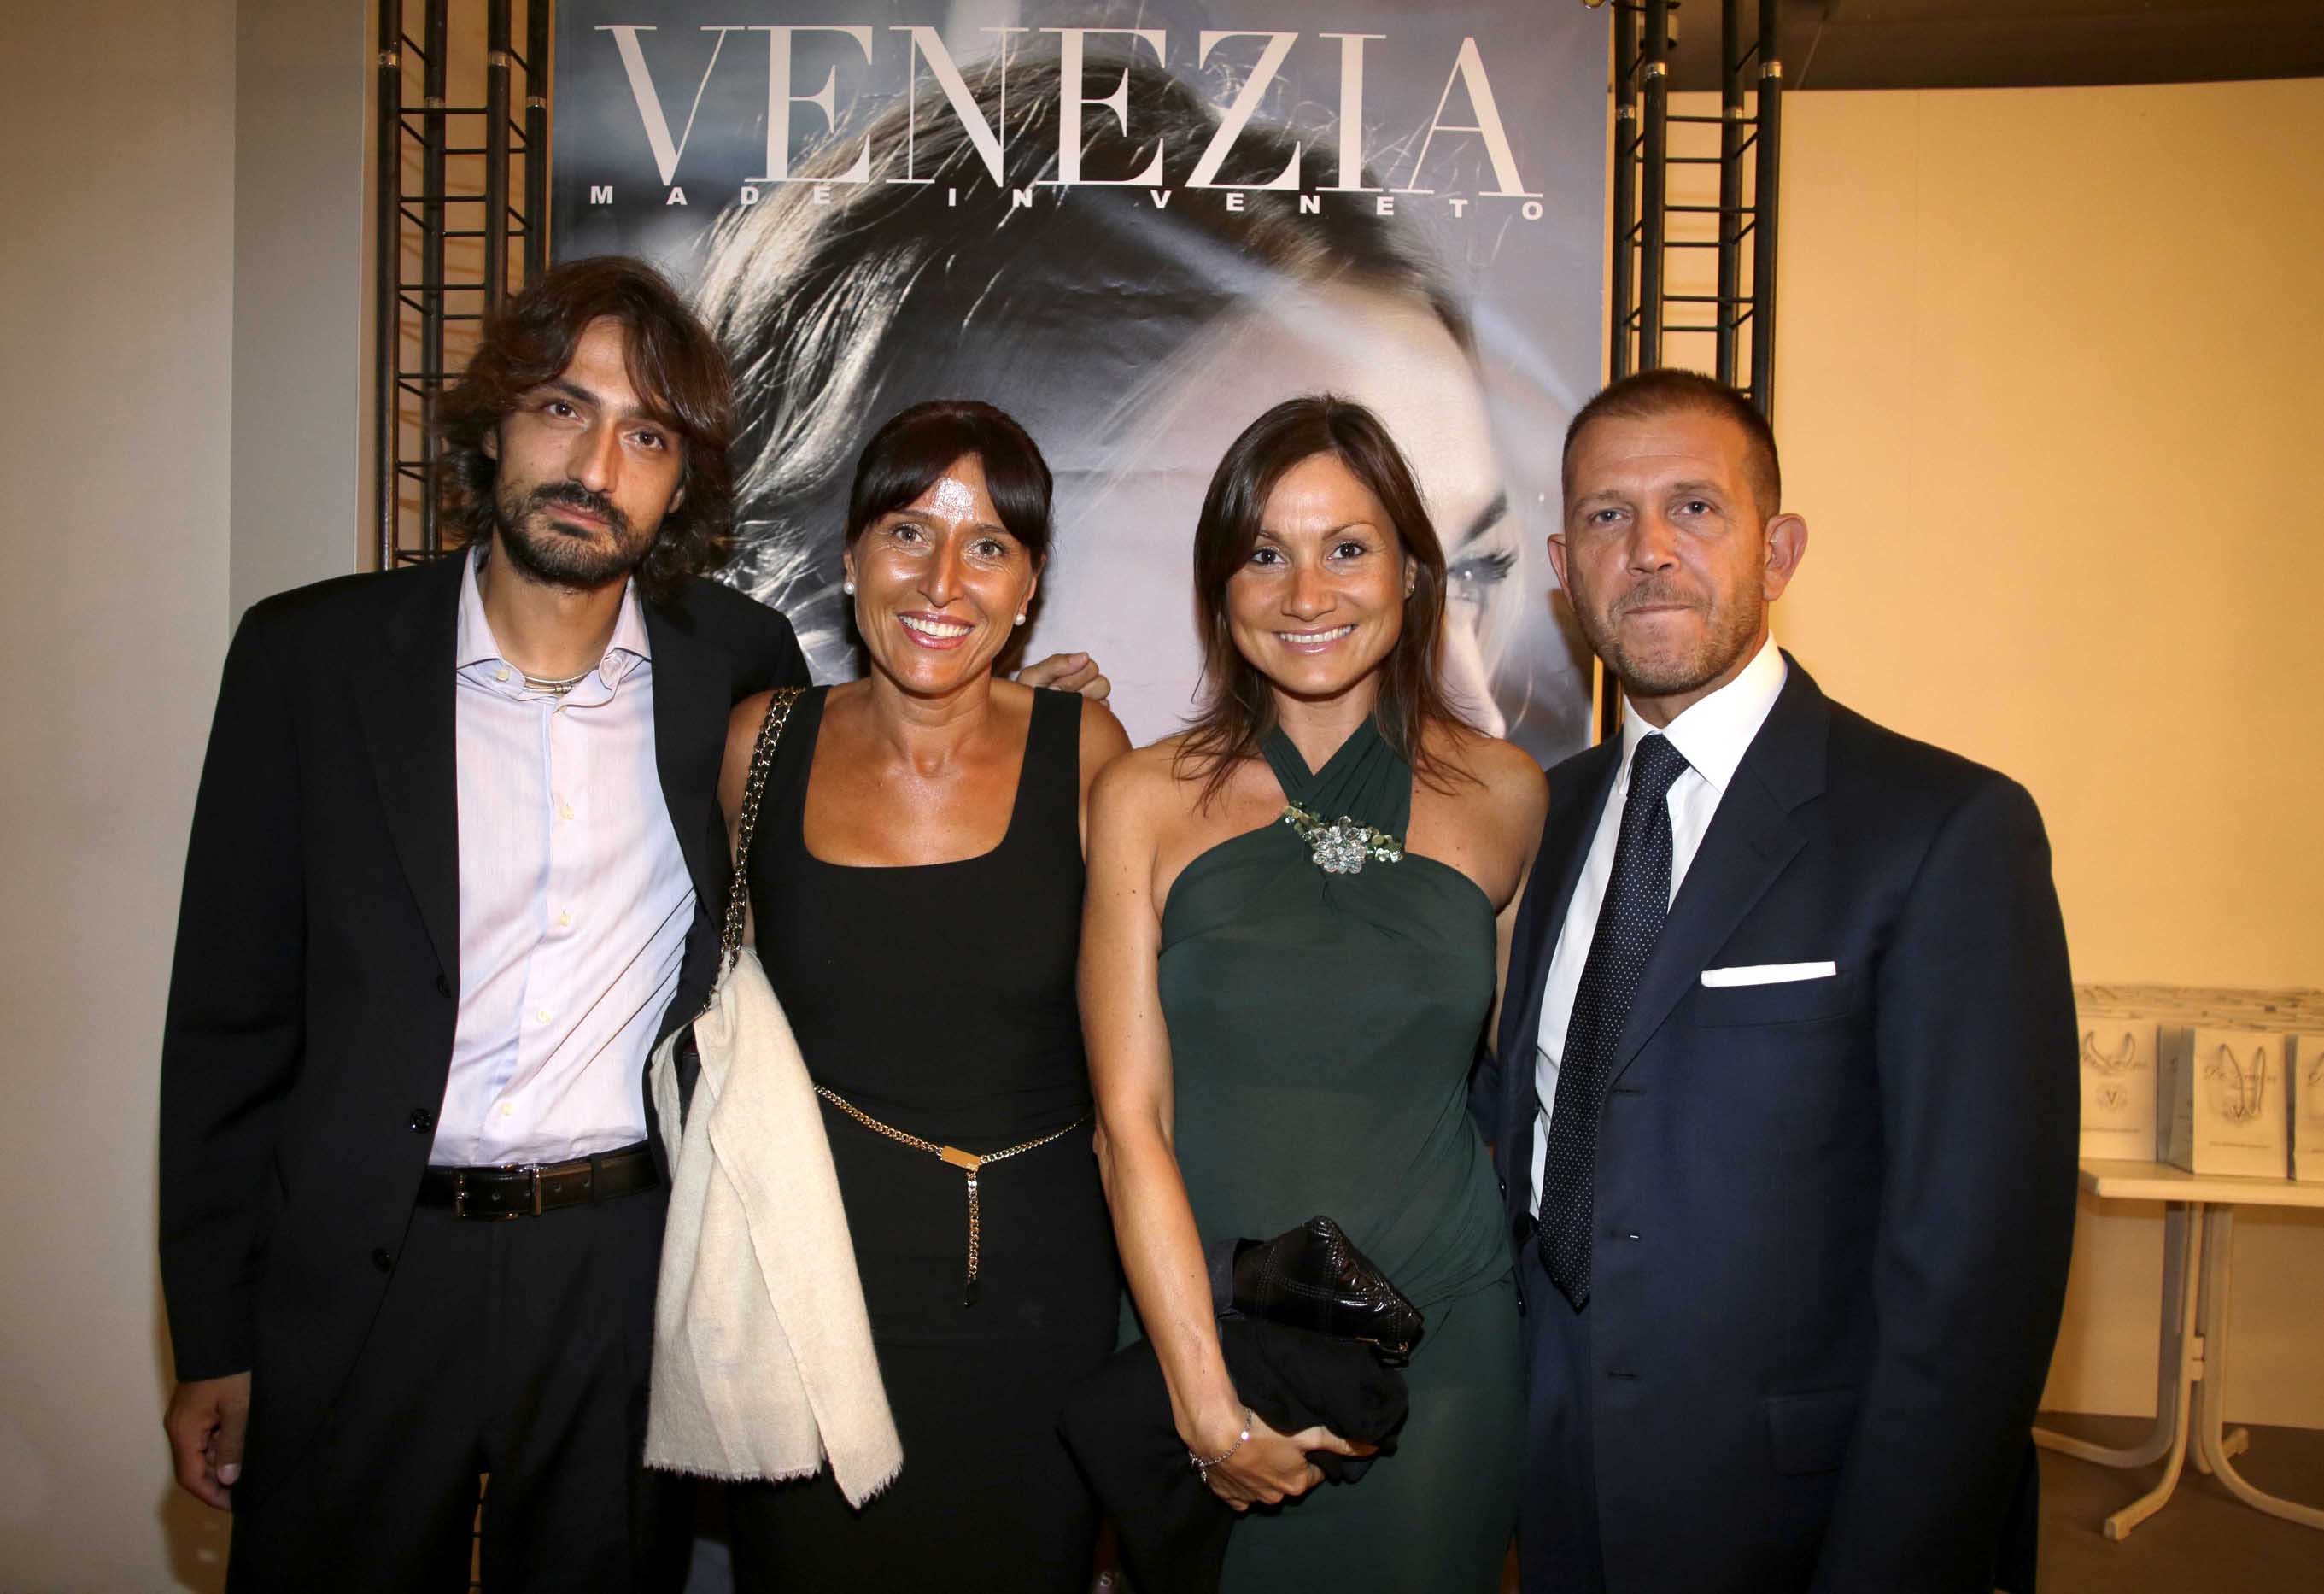 ALESSIO LUCIANO,ARNITA BATTAGION,FRANCESCA PRETTO,GUIDO CHECCHI